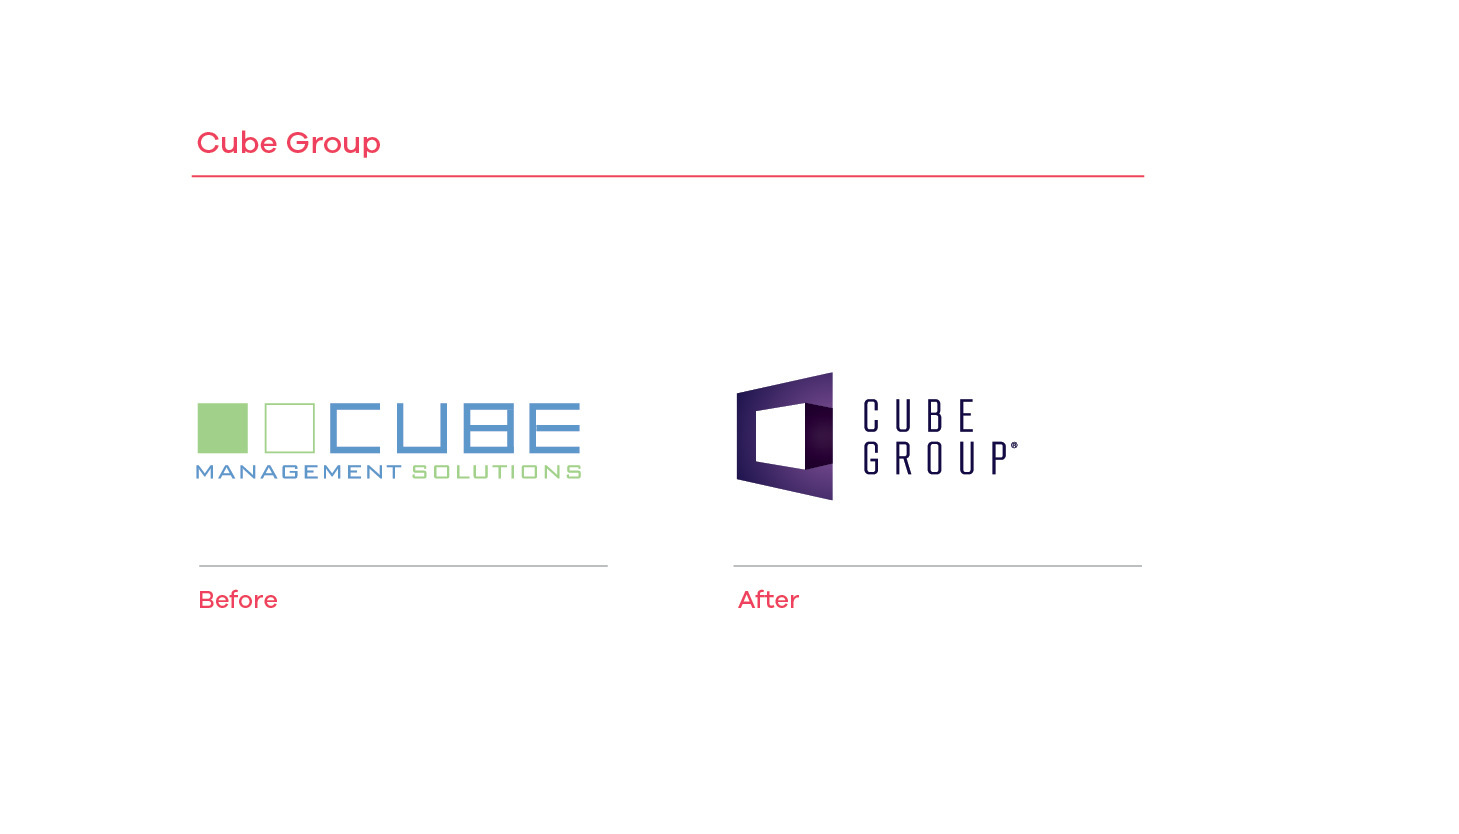 Cube Group before and after branding